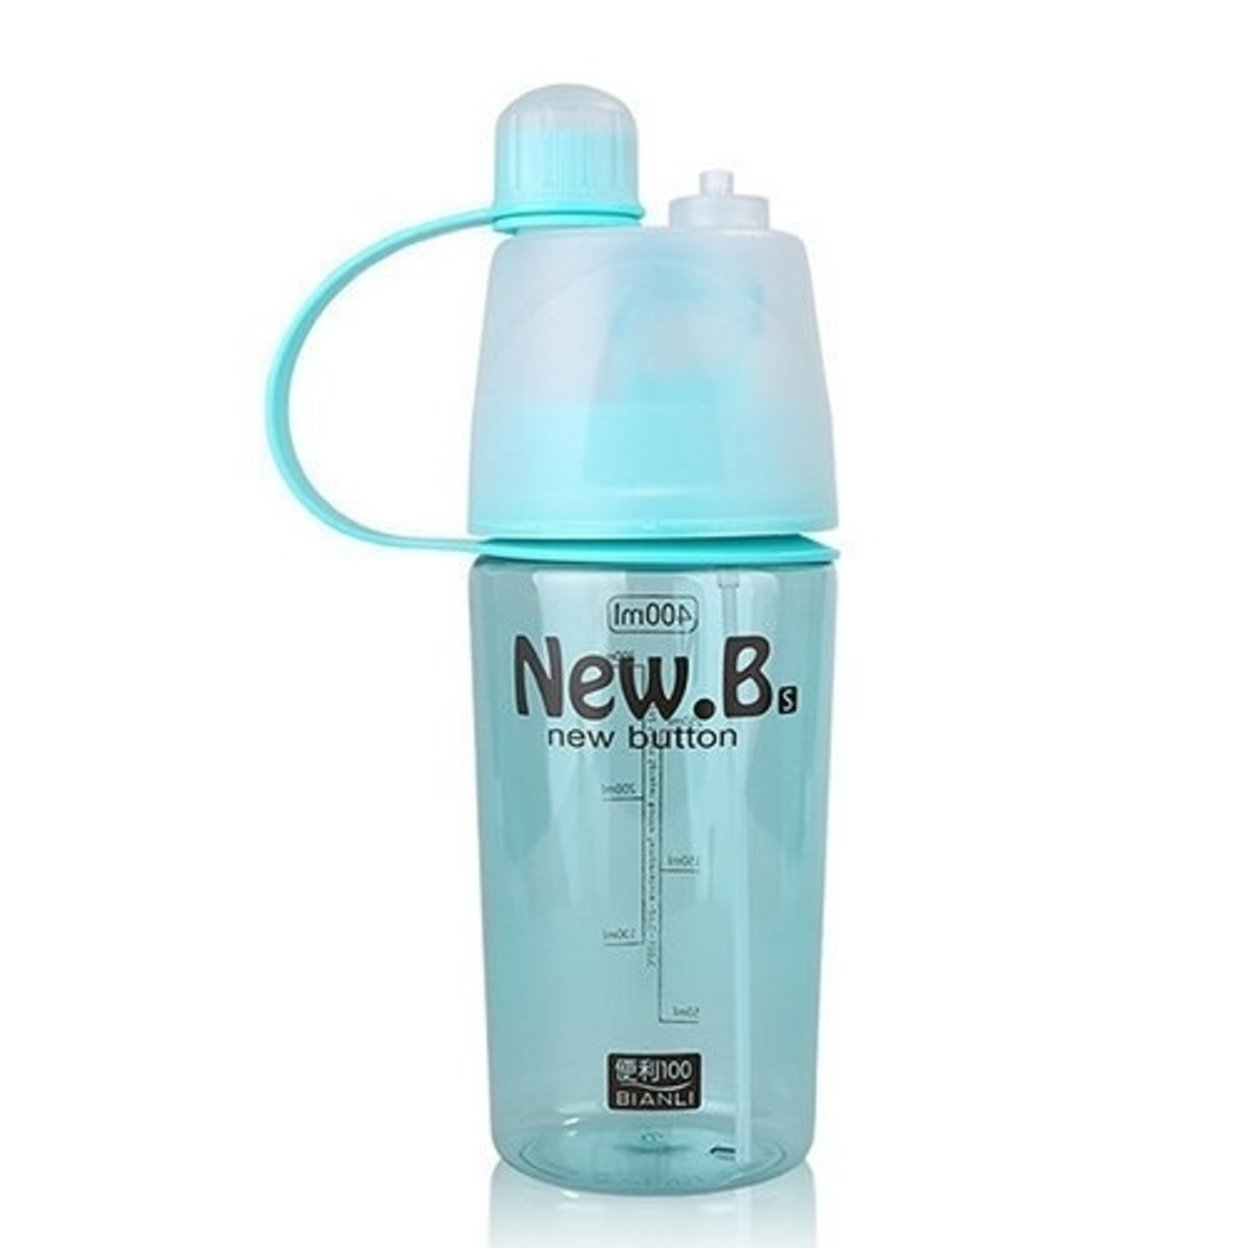 Portable 400 ml 2 in 1 Outdoor Sport Drinking and Misting Spray Water Bottle 59f5f4a6e2246154c22fd3f8